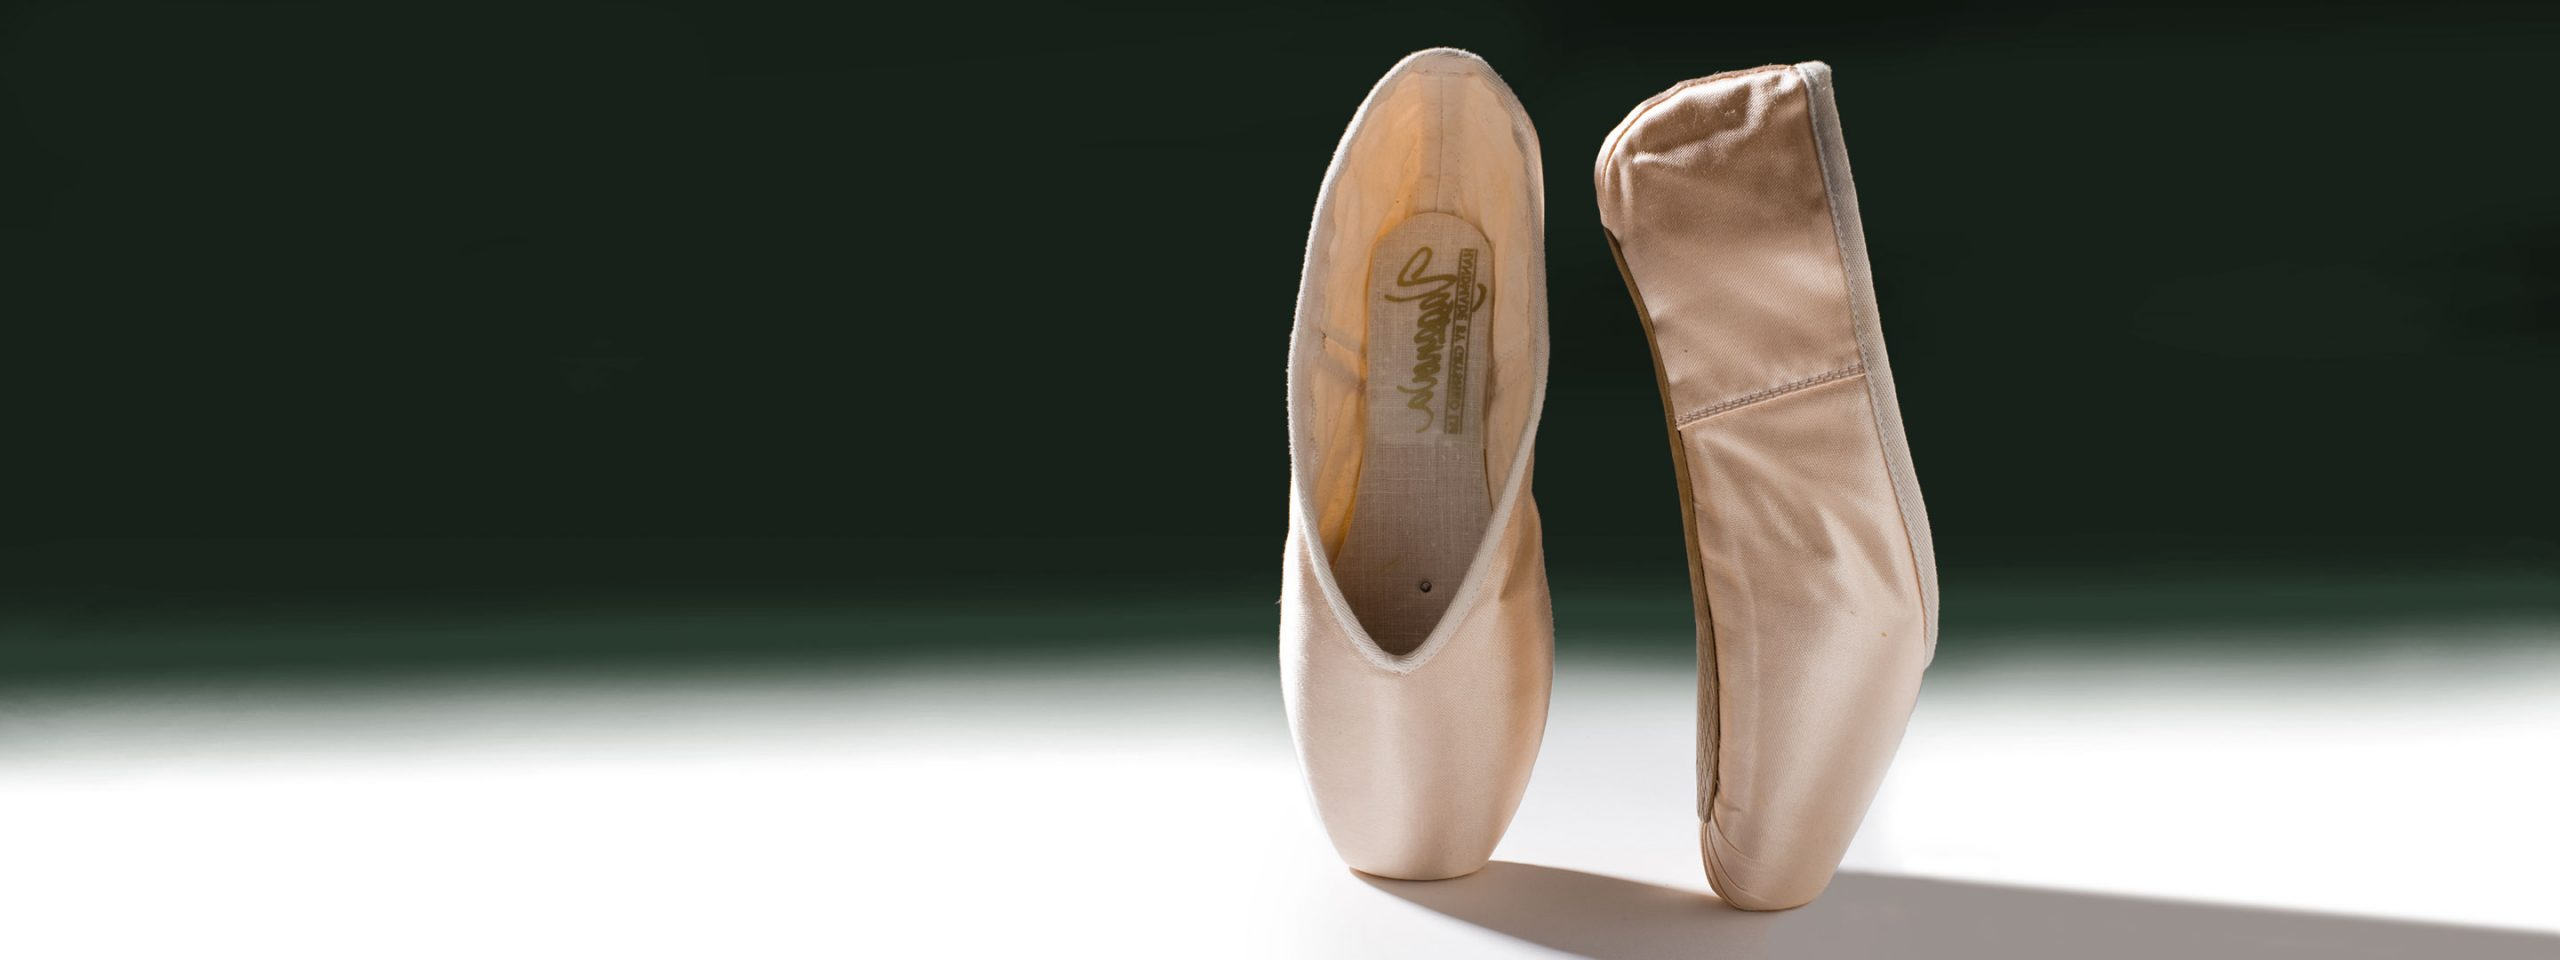 On Pointe:The Rise of the Ballet Shoe